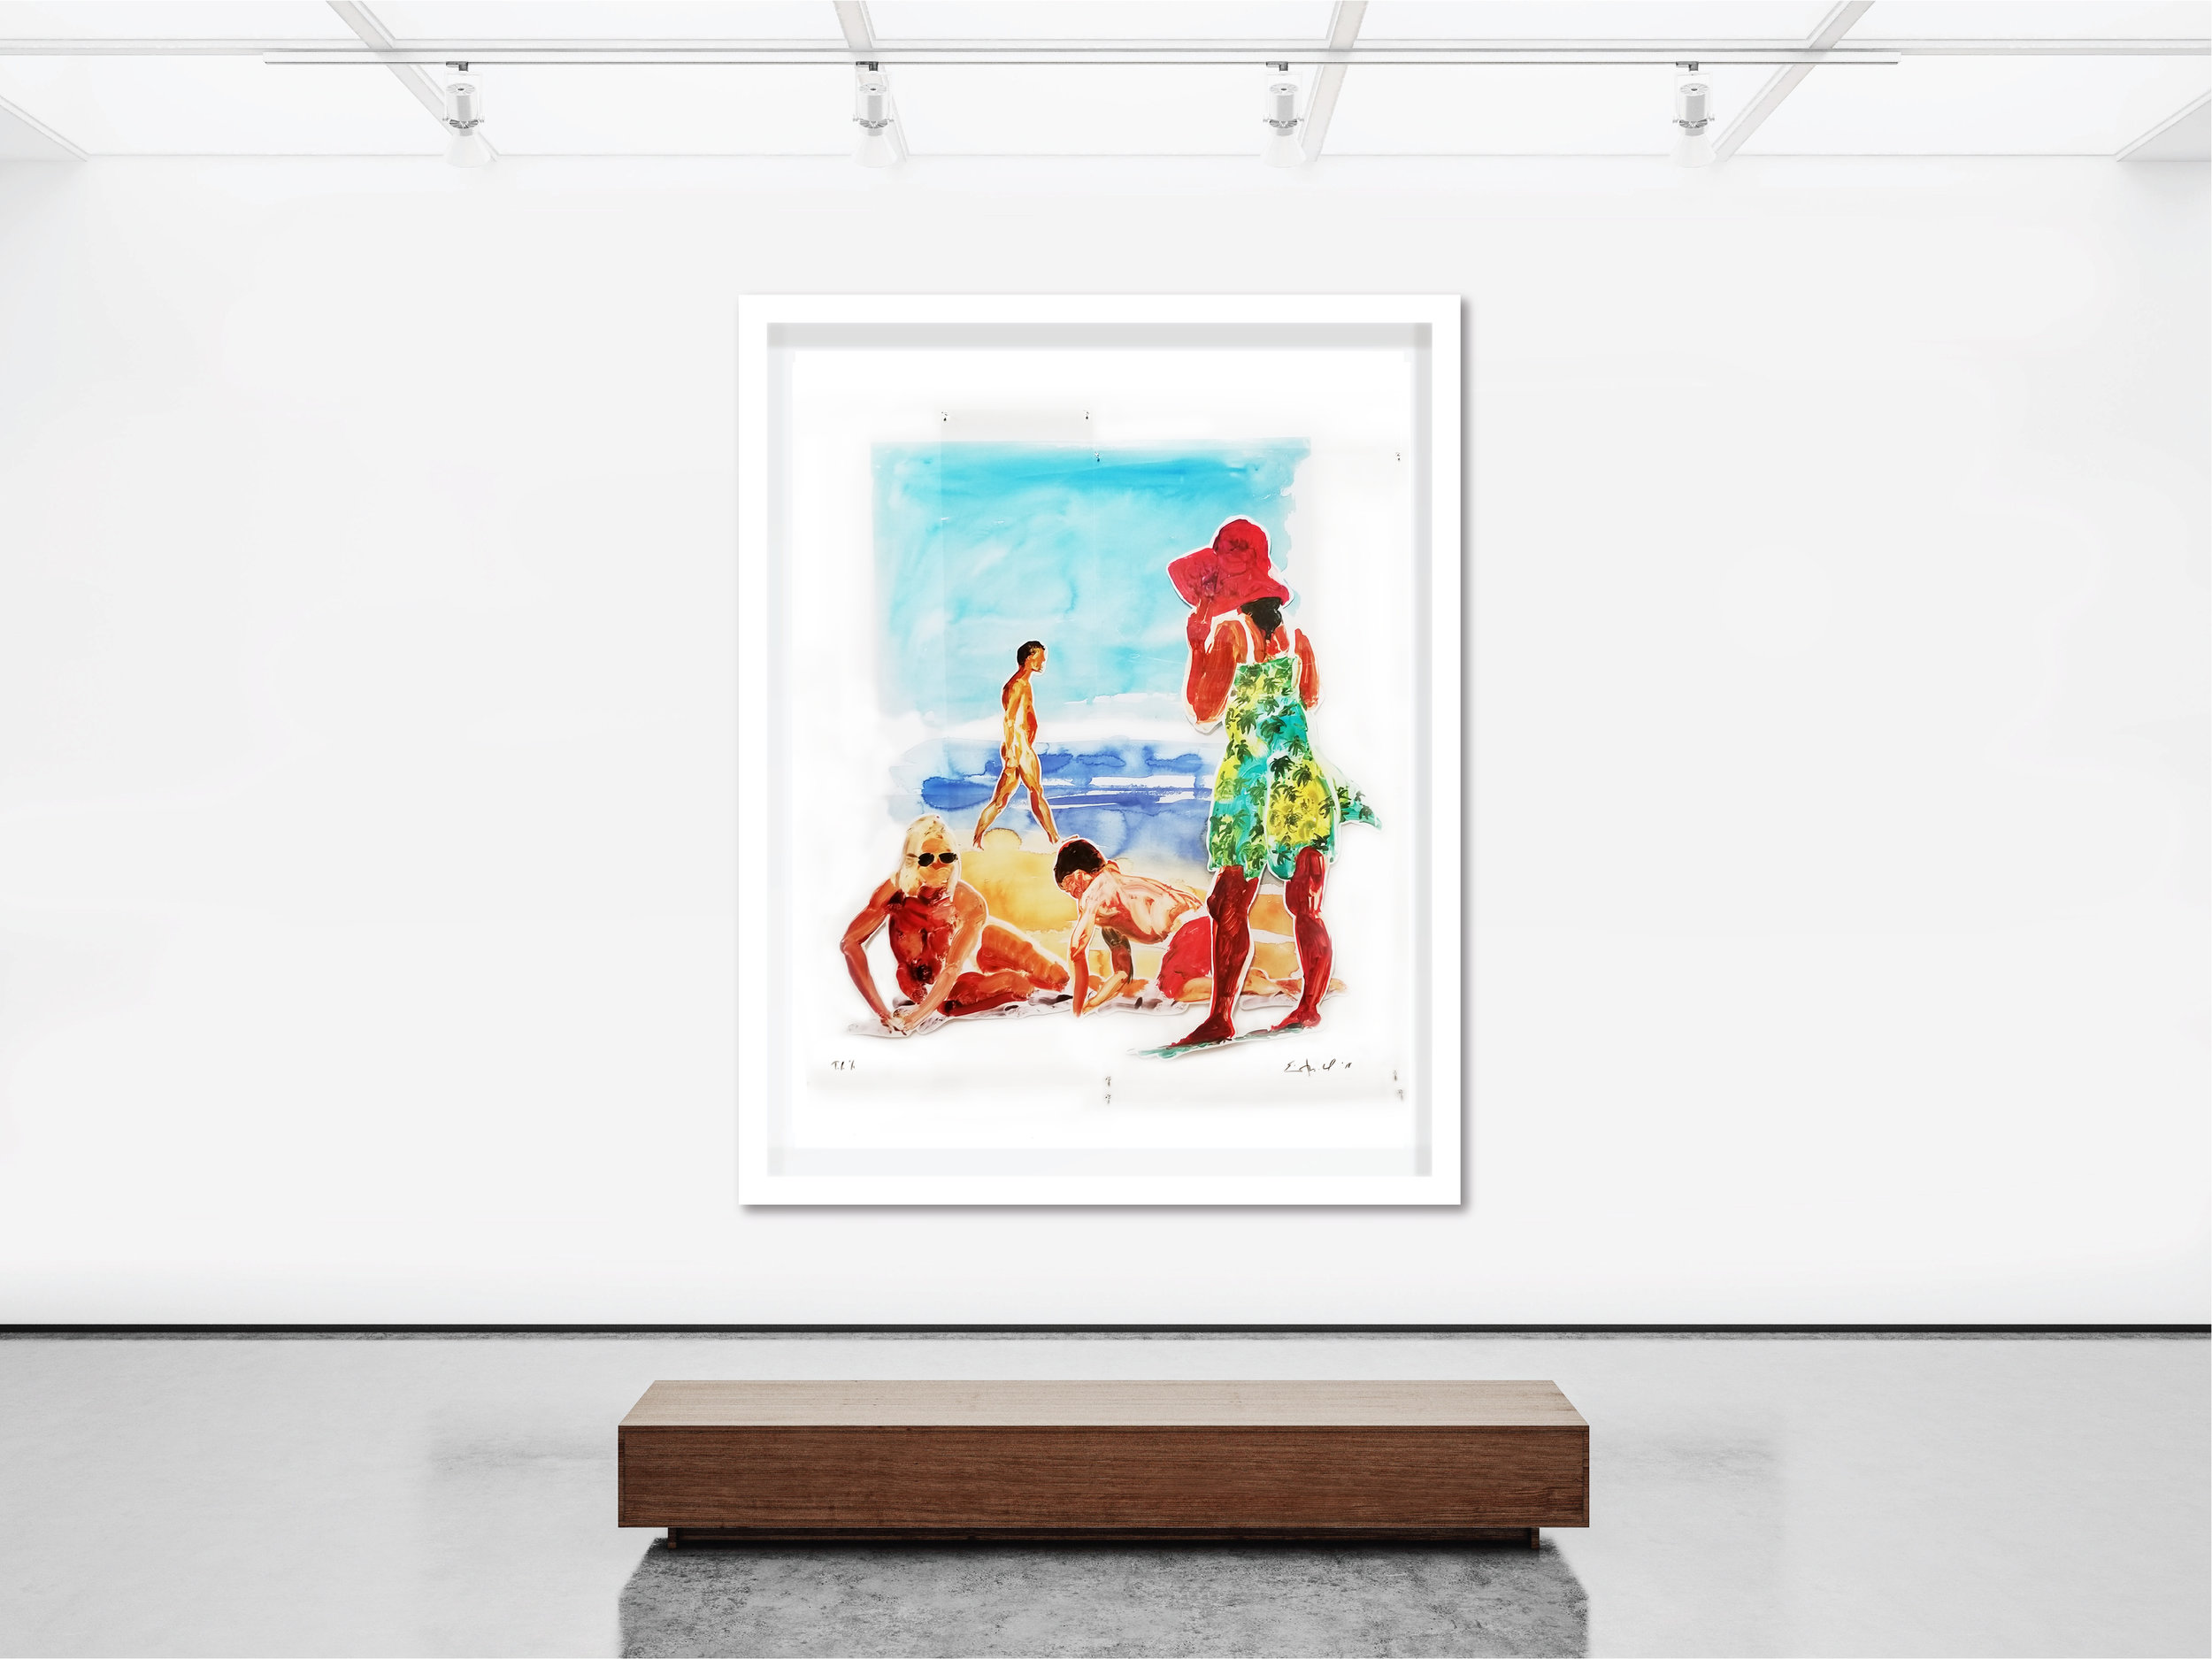 Untitled (2 Women & Boy, large format),  2017  Sublimation on mylar with pins and digital pigment print on paper, mounted to acid-free board